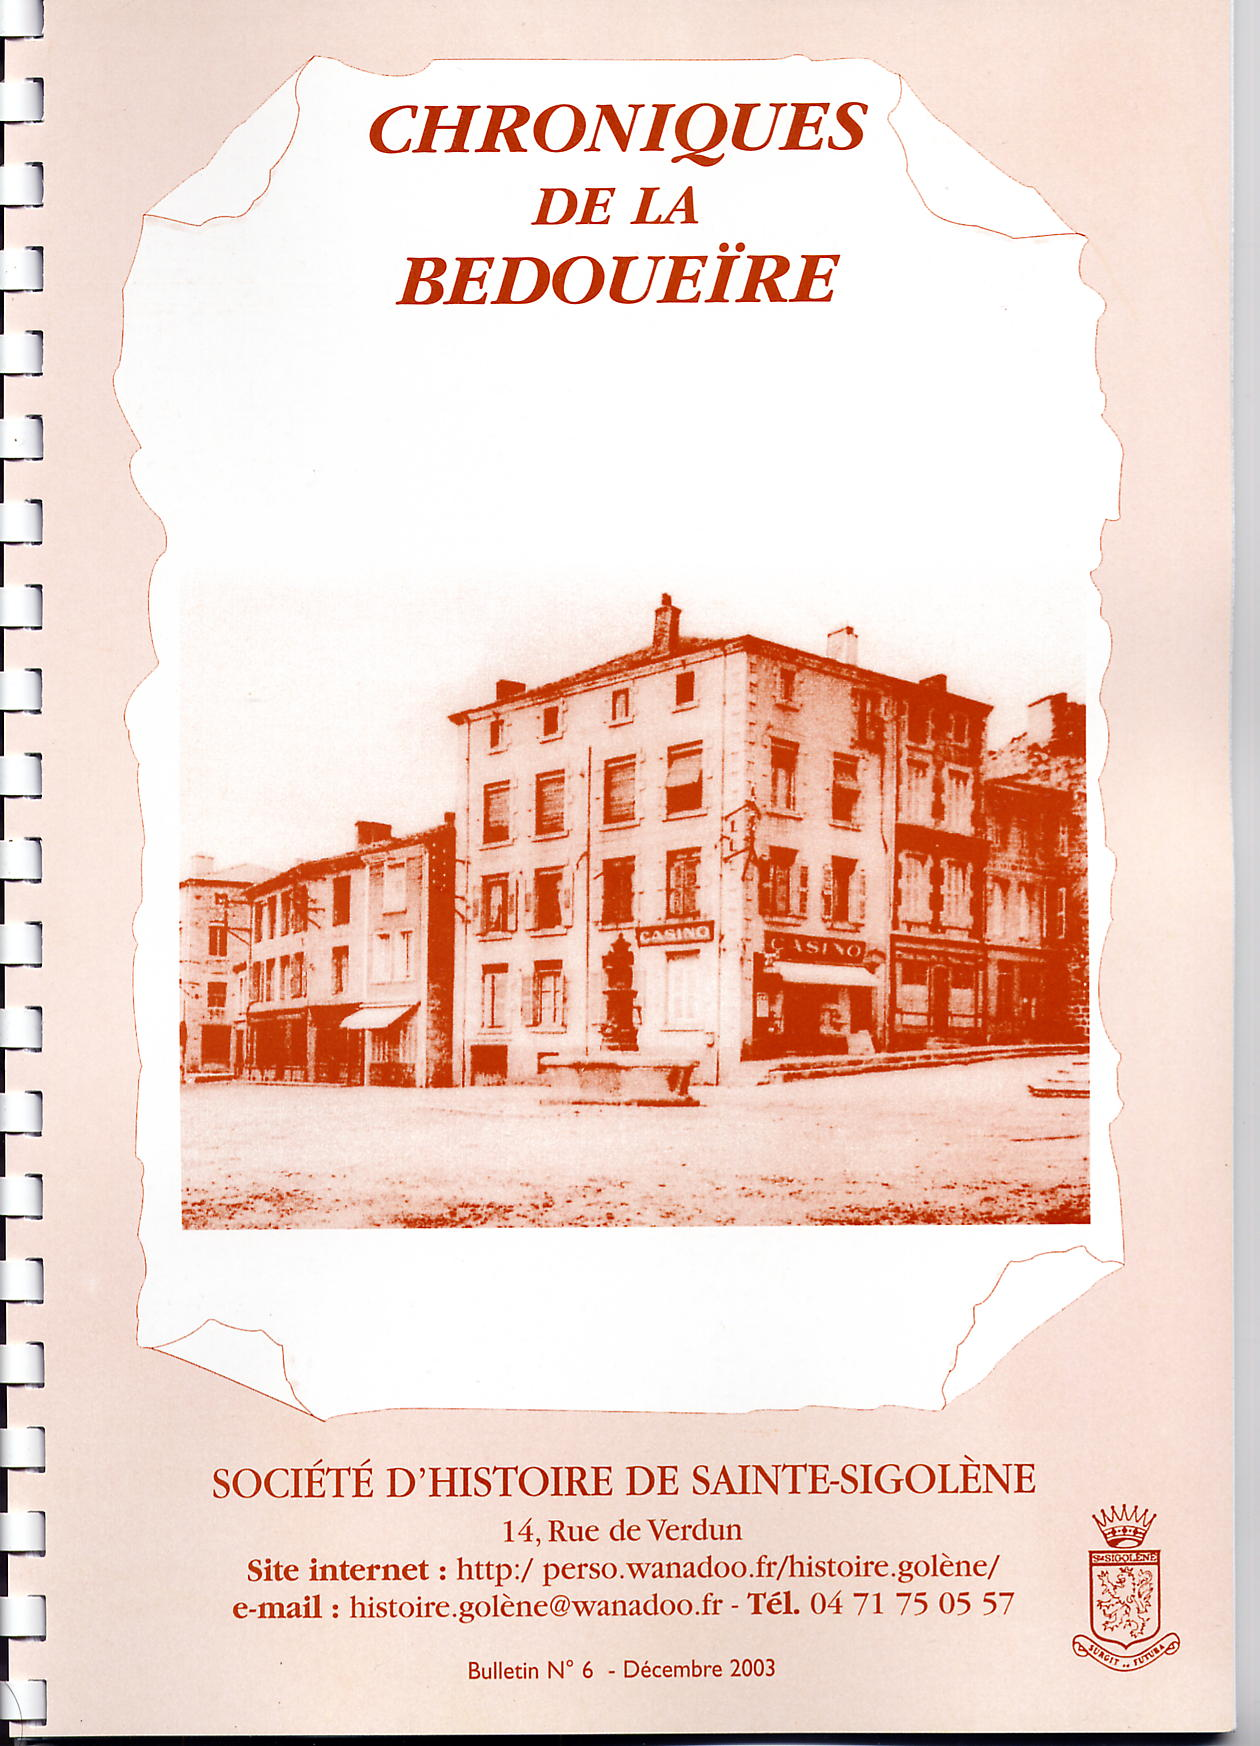 Bedoueire n°6